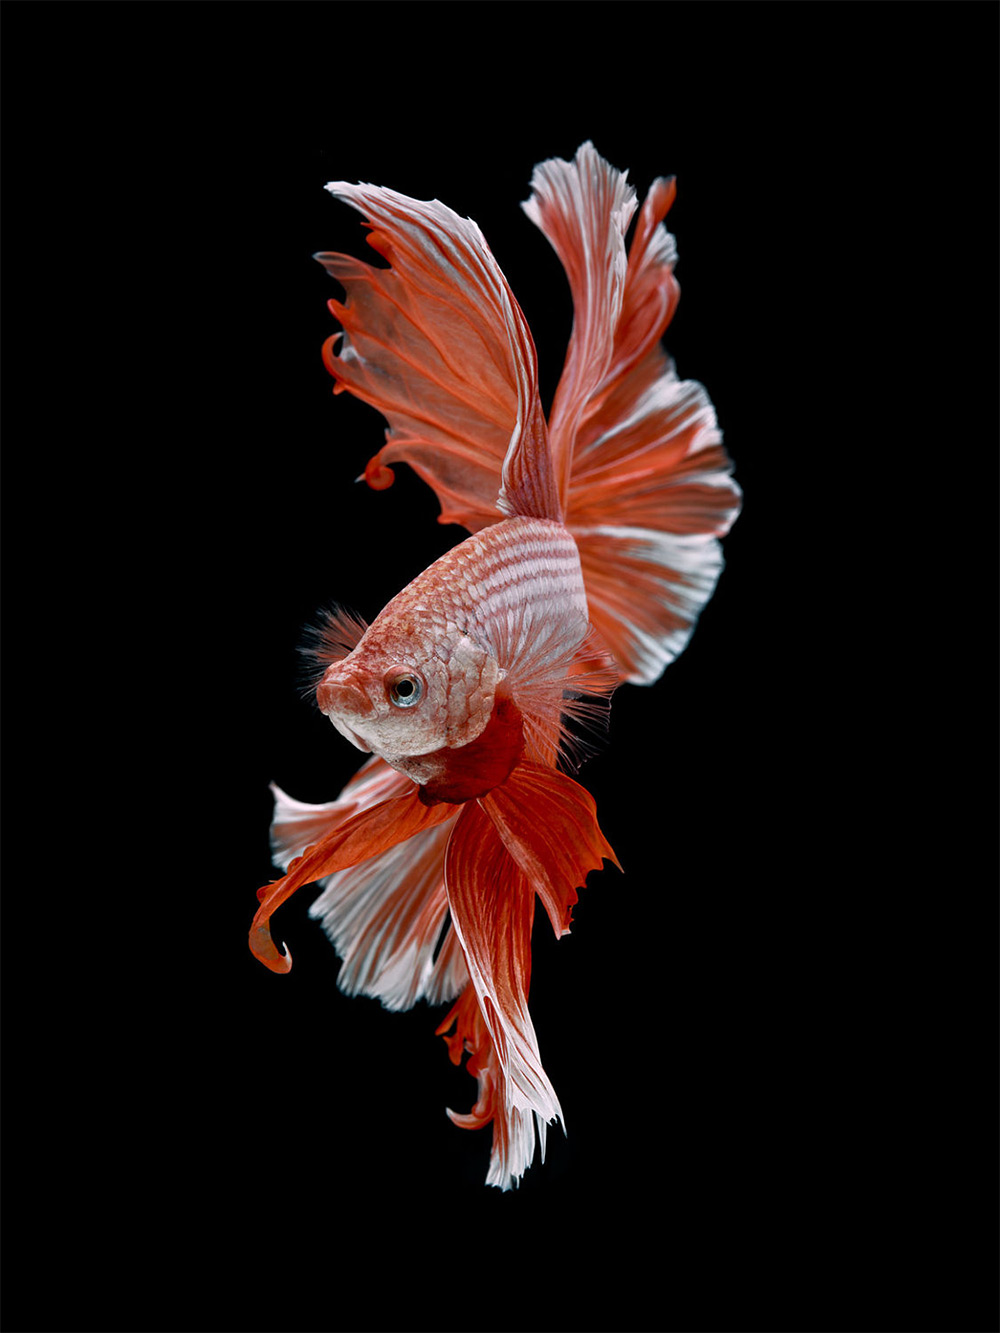 Dramatic Portraits of Pet Fish Swimming with Personality